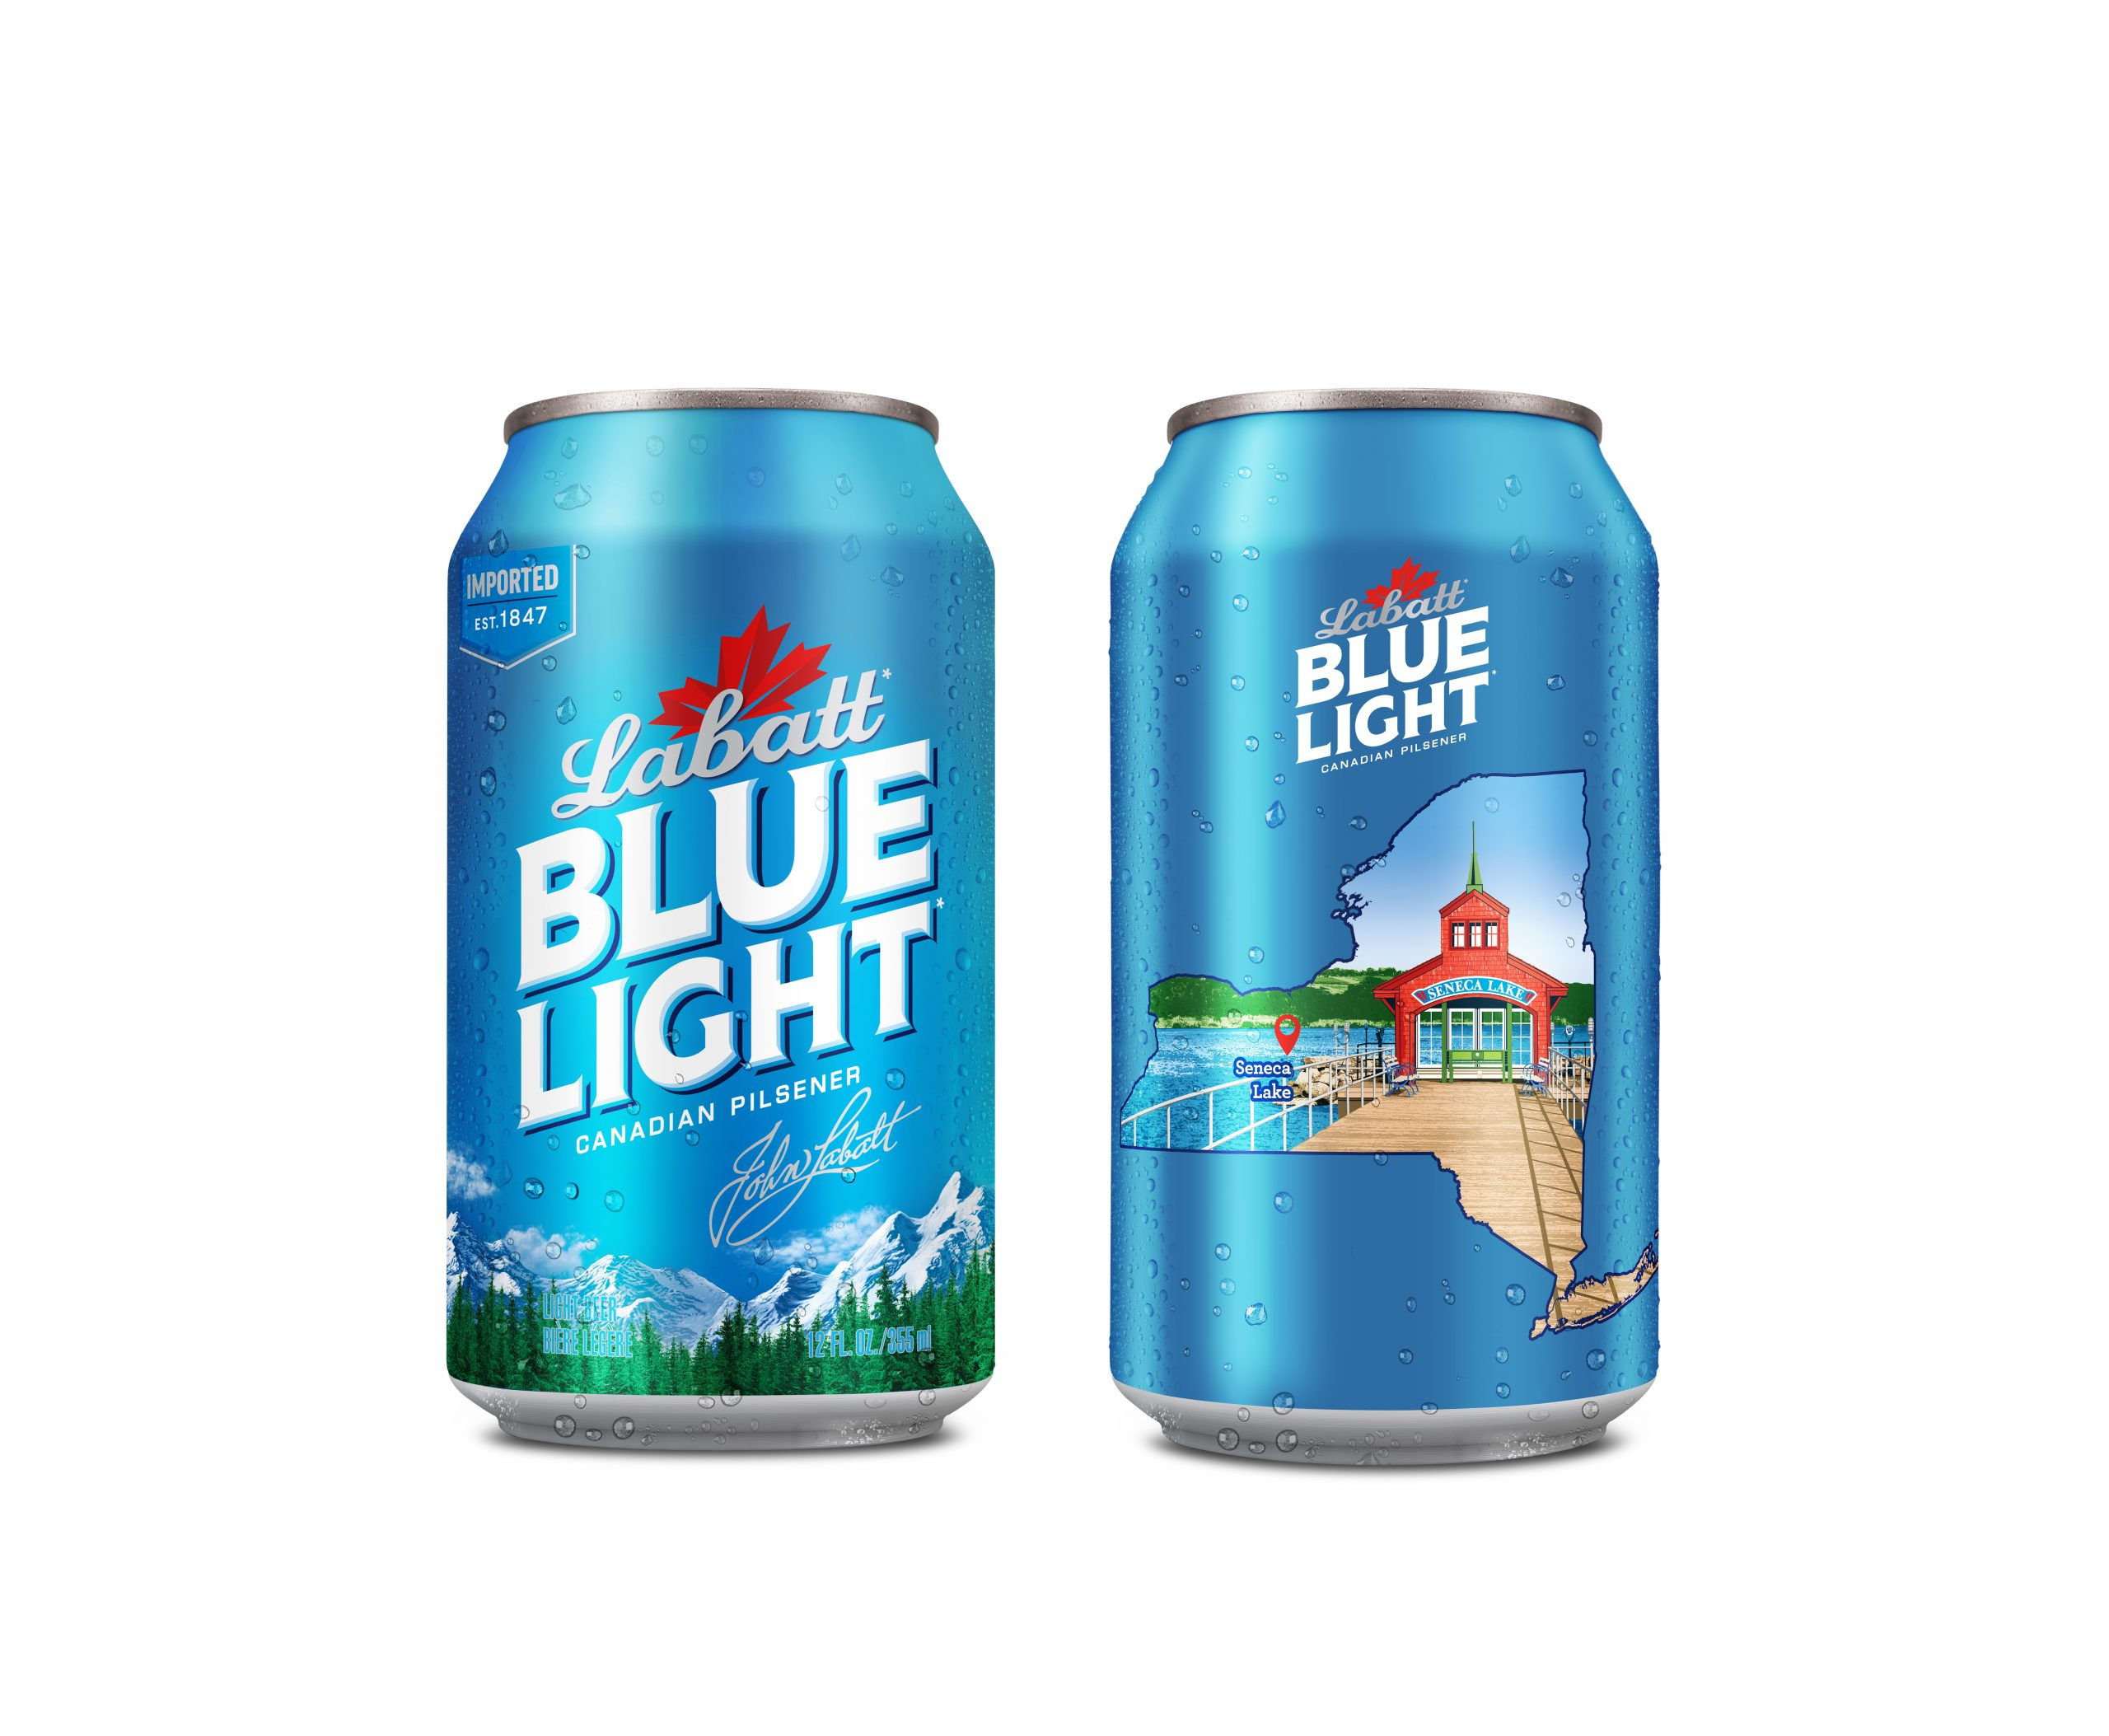 Seneca Lake Featured on Cans of Labatt Blue Light This Summer